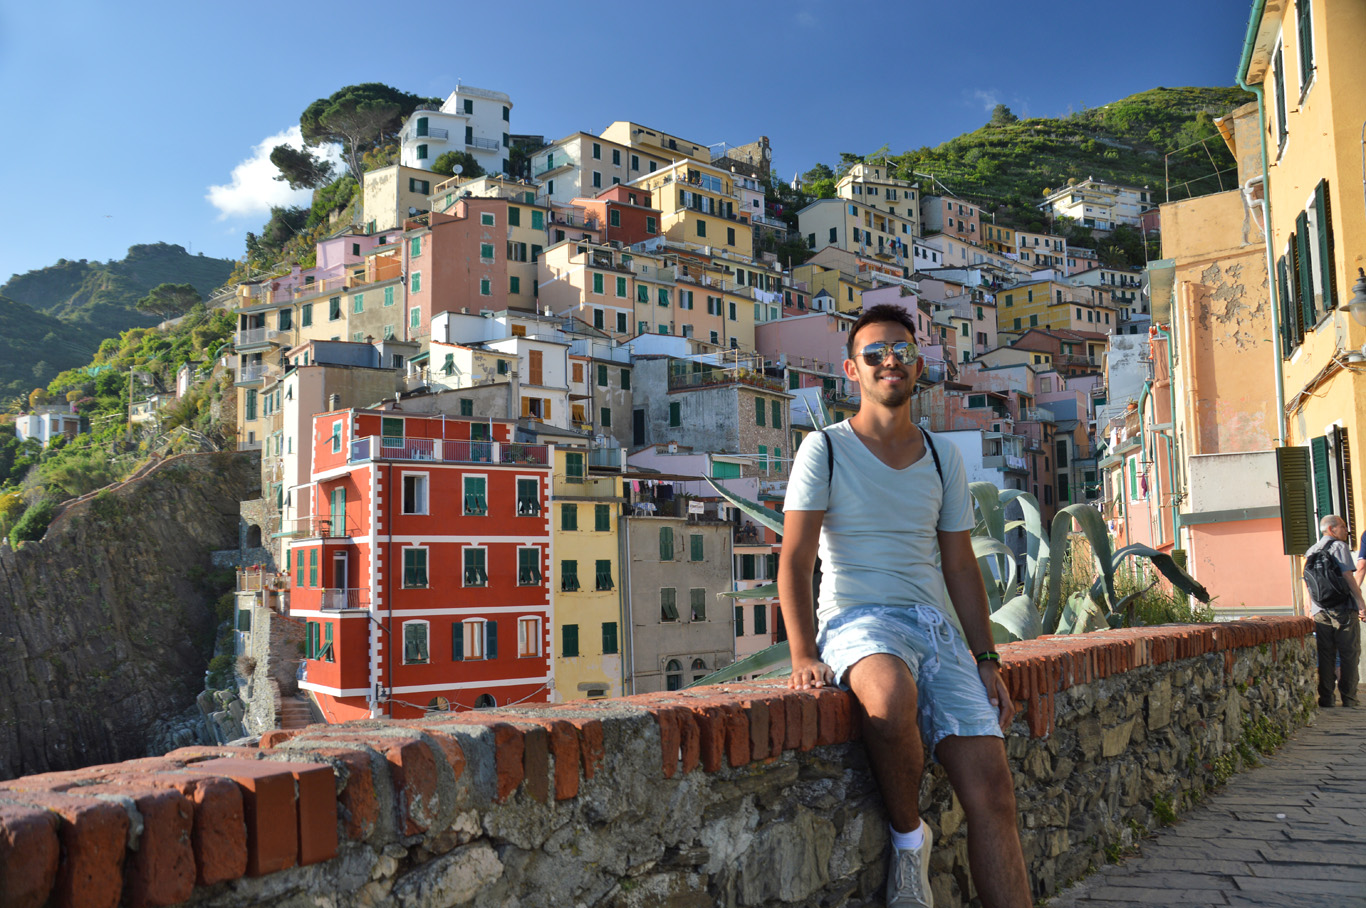 On the way back - in the first village - Riomaggiore